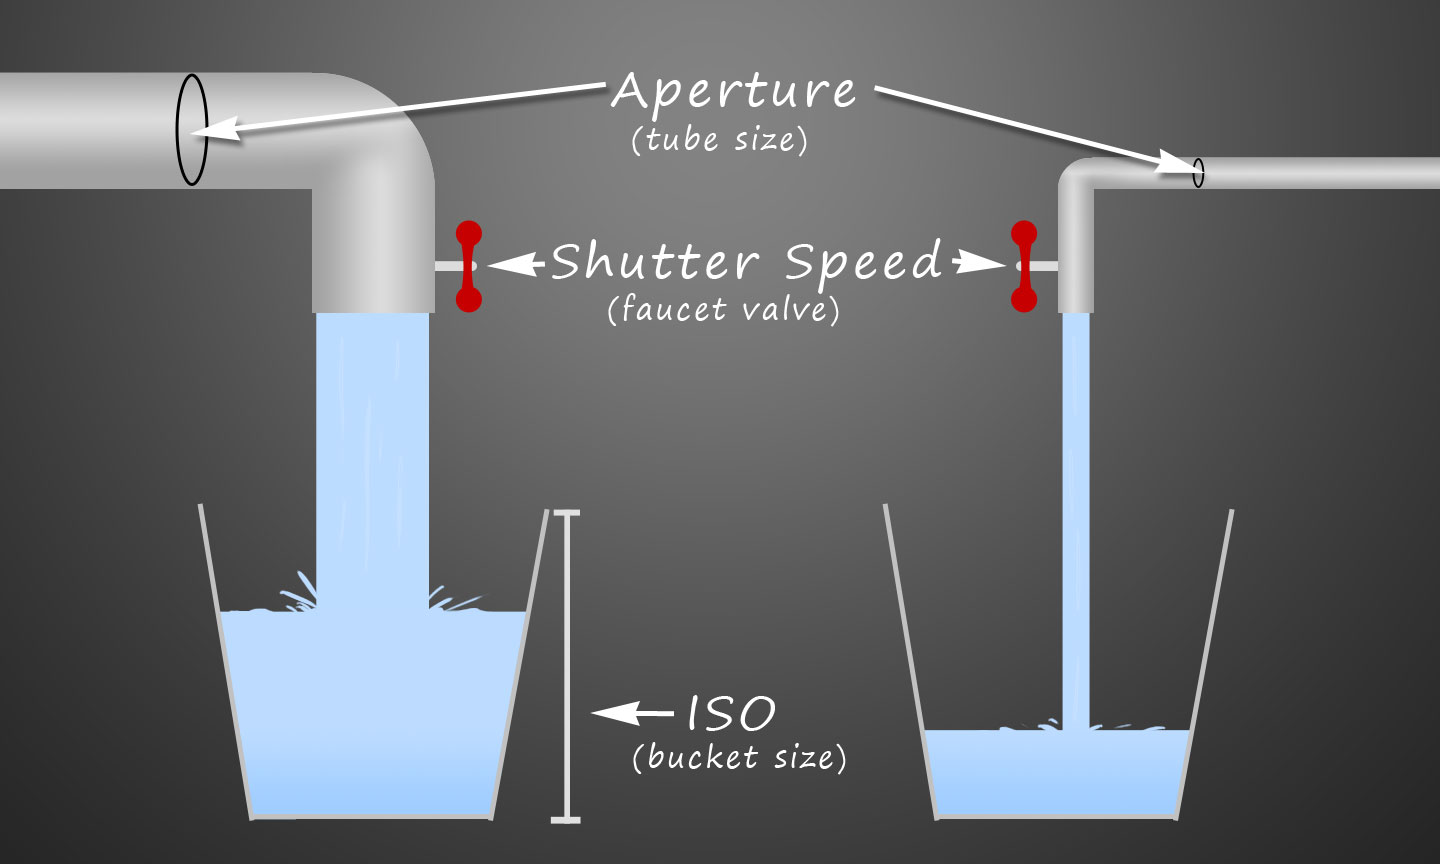 Diagram of Exposure and Plumbing Analogy